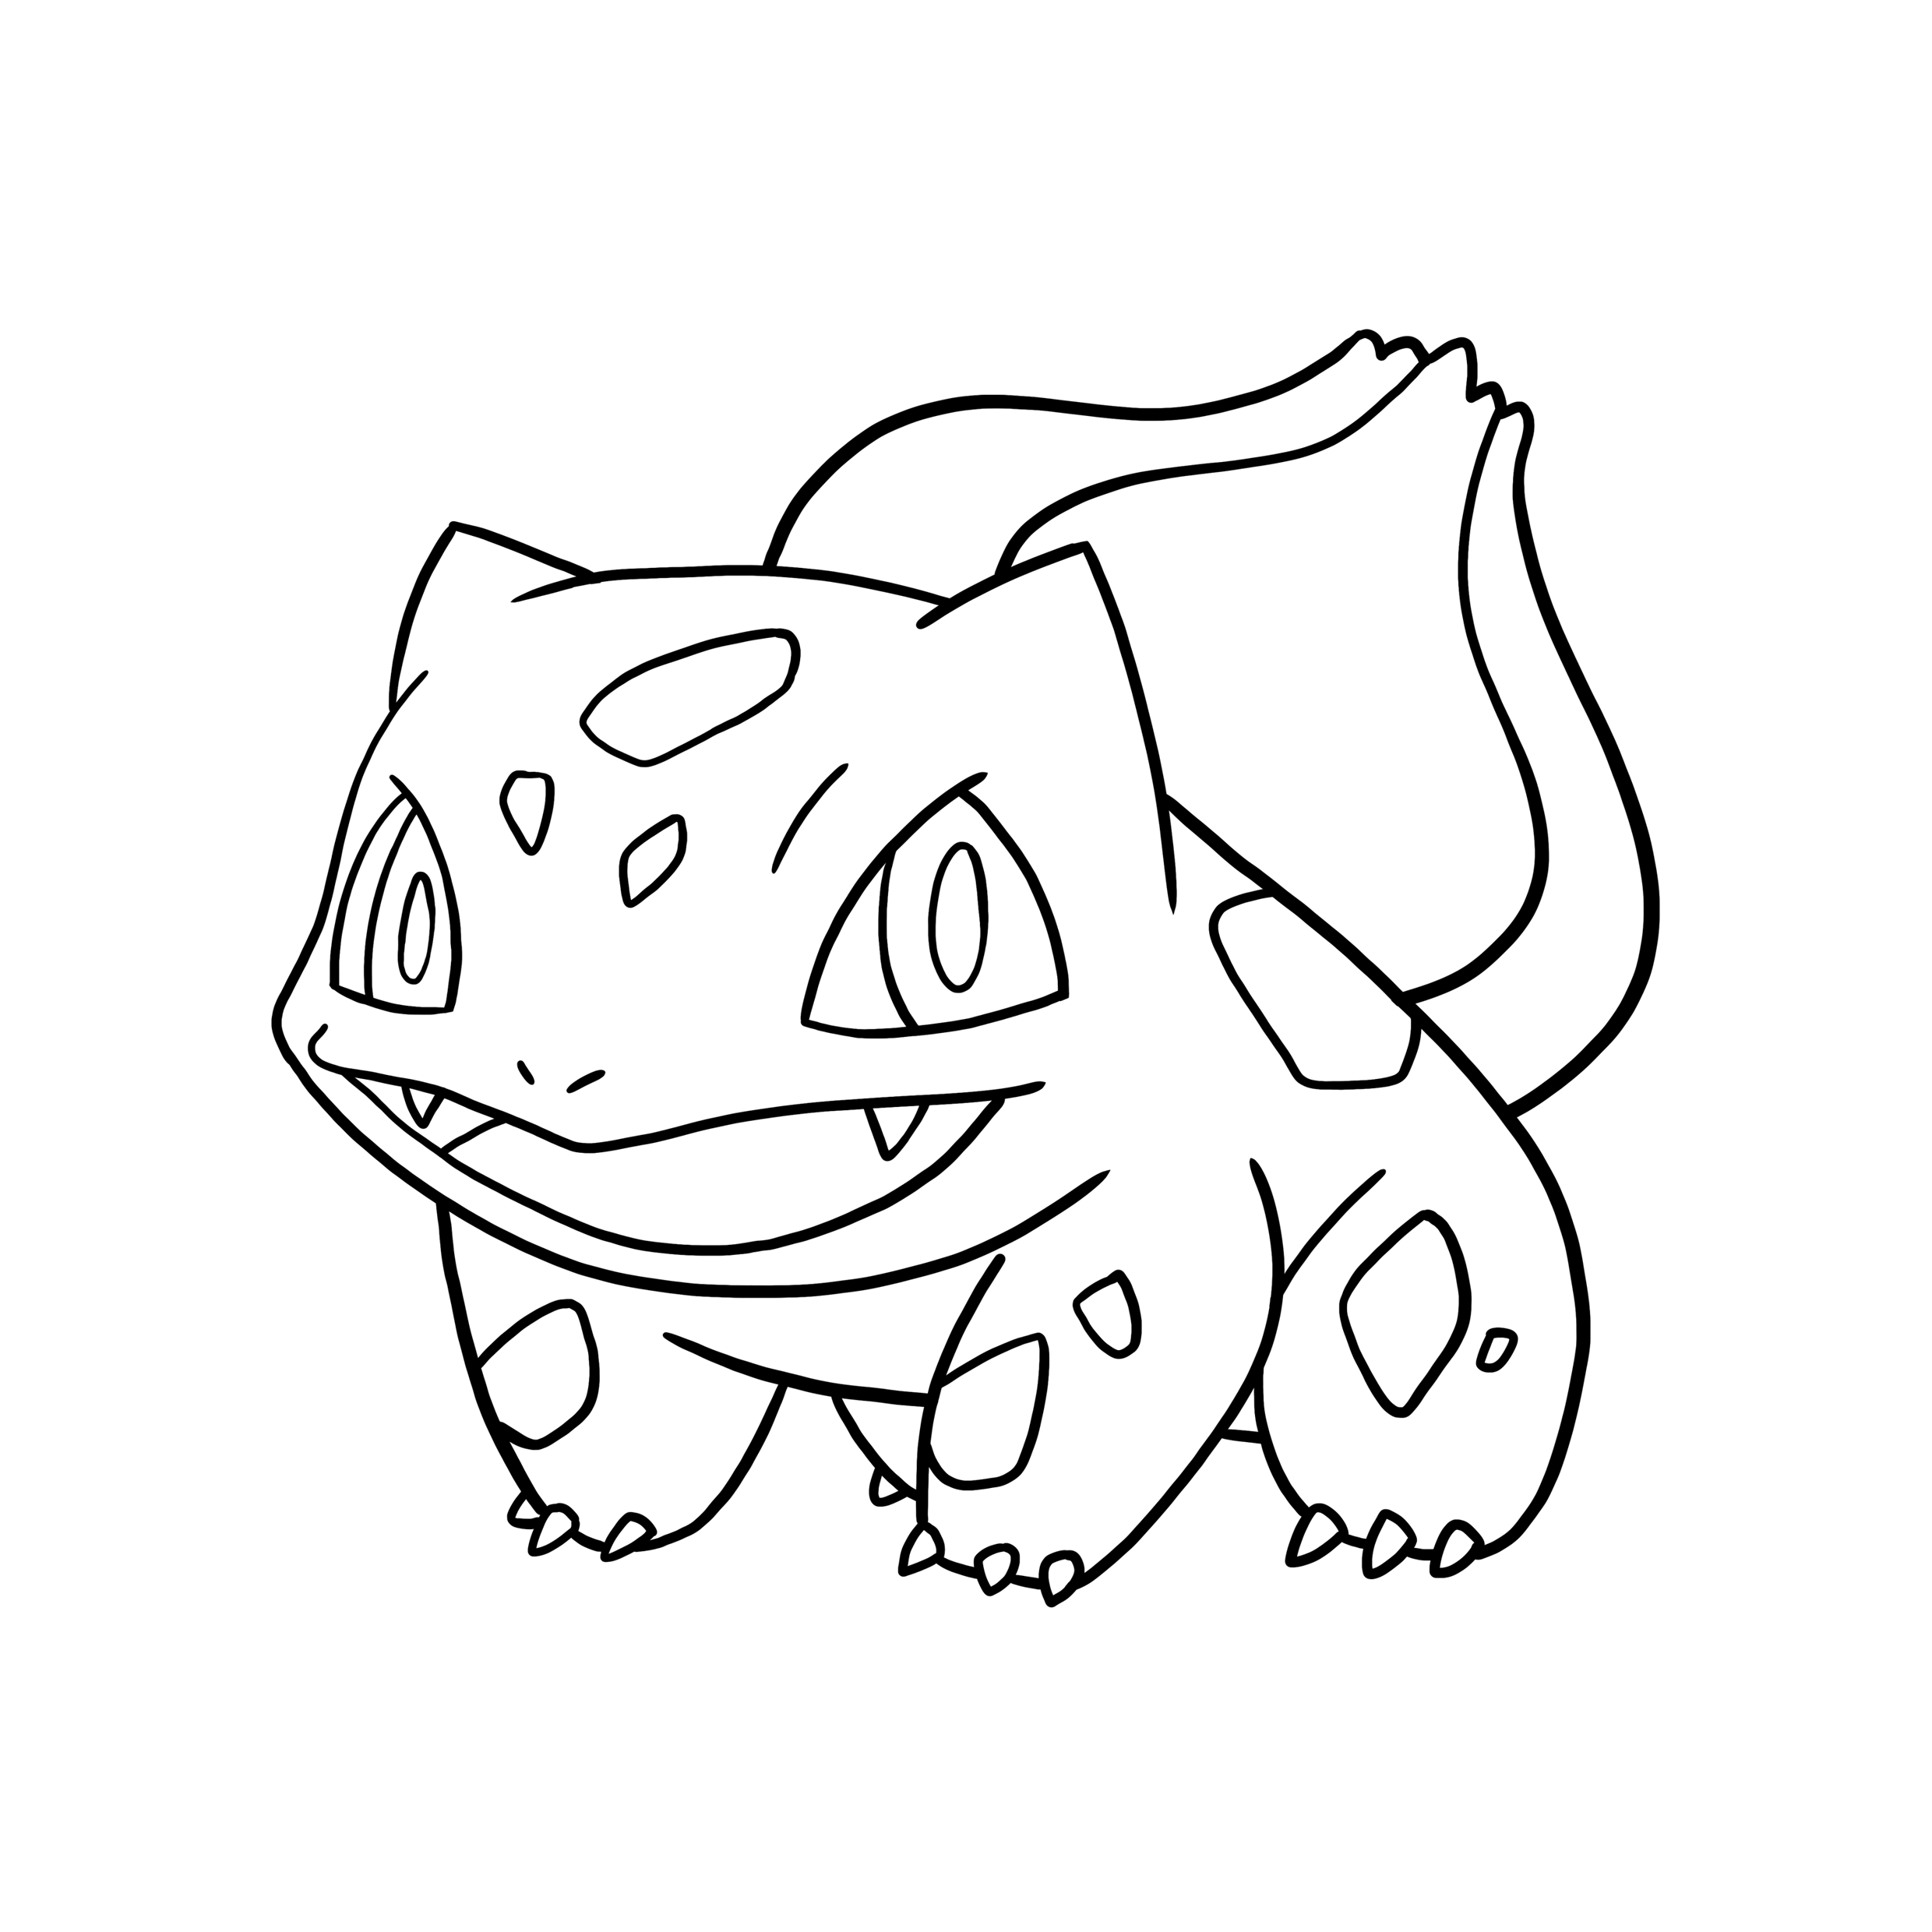 Bulbasaur Coloring Page Pokemon Coloring Sheets Pokemon Coloring Pages Pikachu Coloring Page